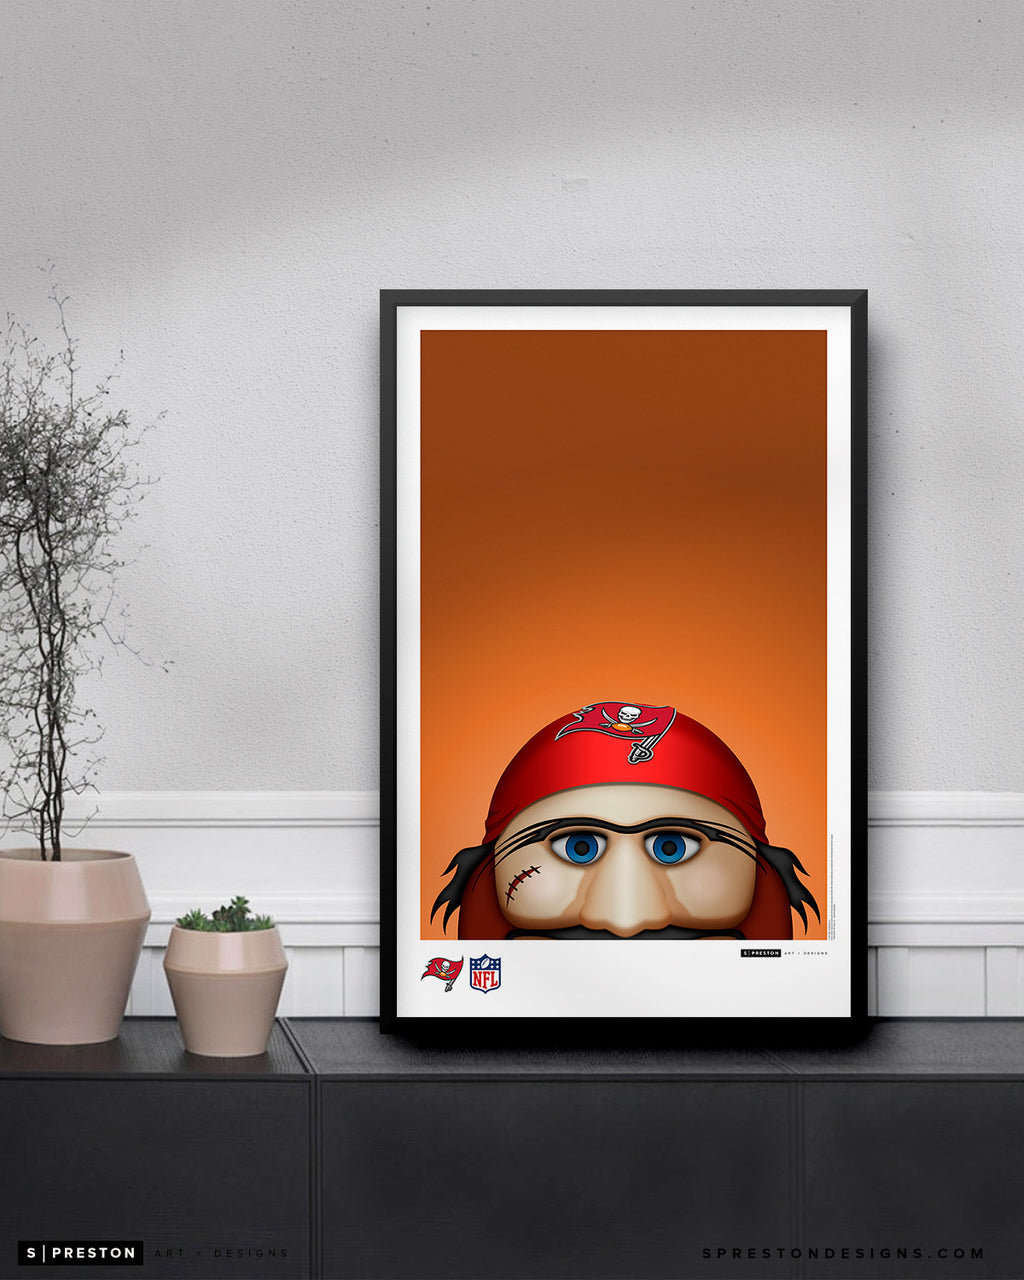 Minimalist Captain Fear Poster Print Tampa Bay Buccaneers - S Preston